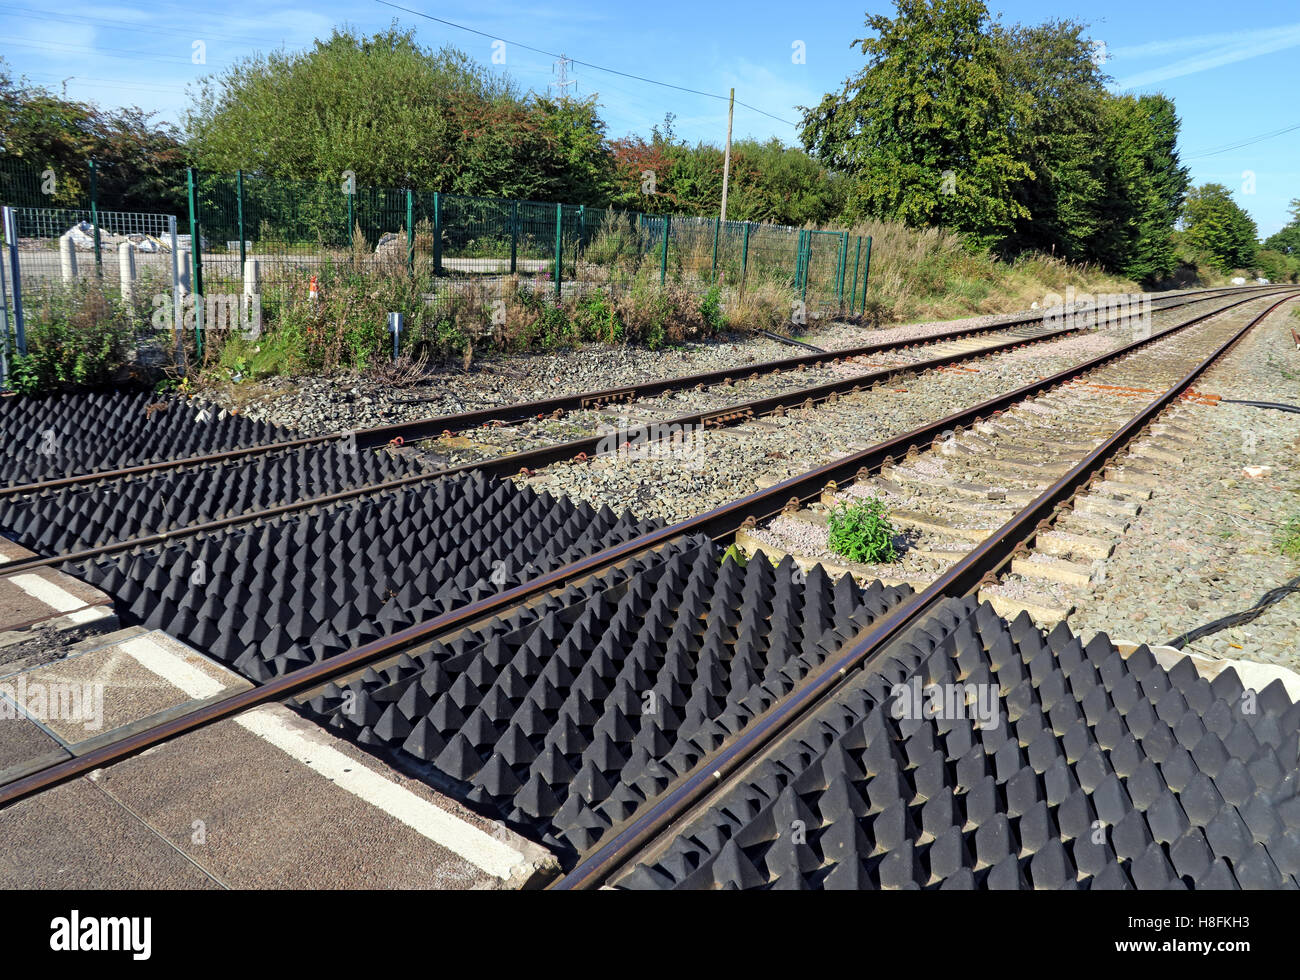 Level crossing at Penketh, Warrington, Cheshire with barriers - Stock Image